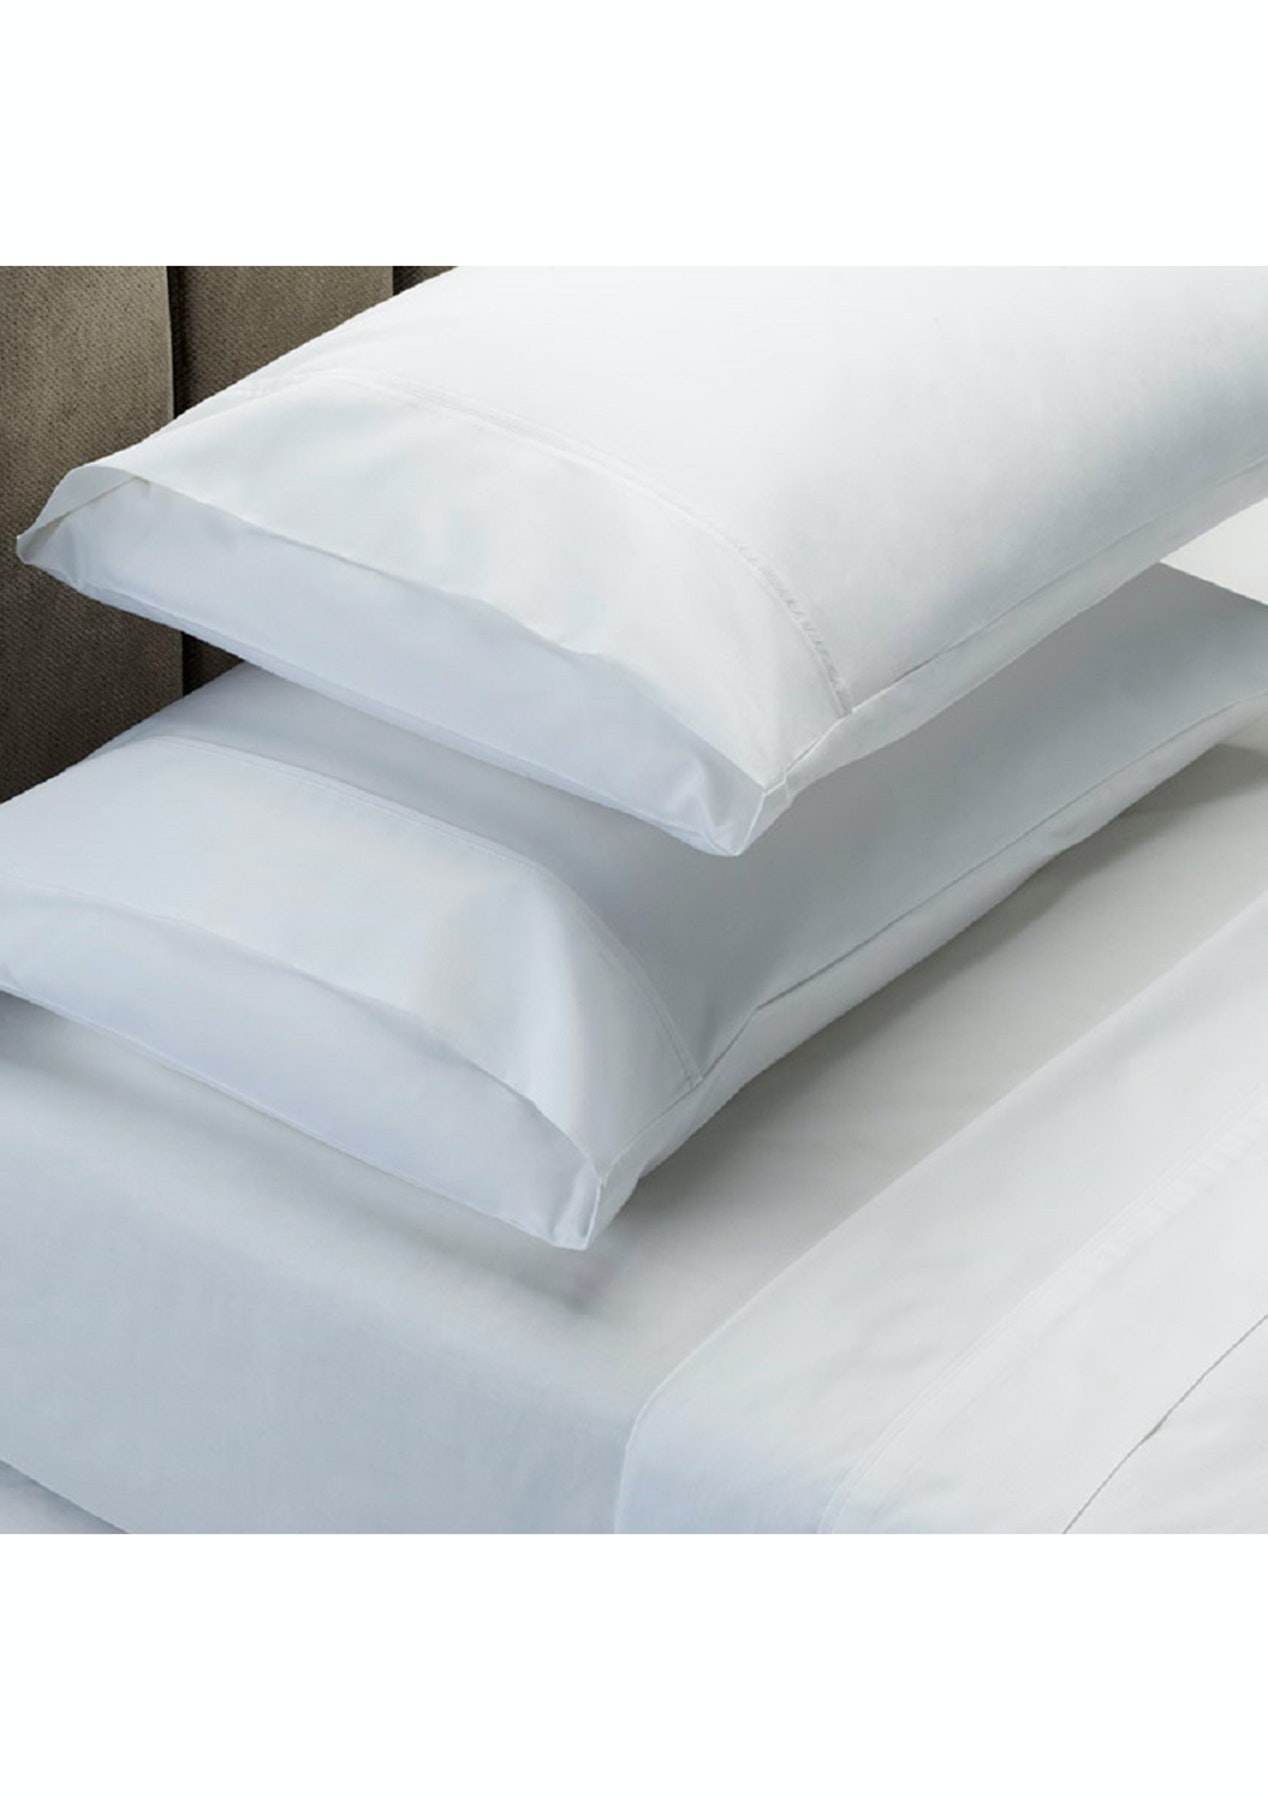 About white 1000tc egyptian cotton complete bedding collection sheet - Park Avenue 1000 Thread Count 100 Egyptian Cotton Sheet Sets Queen White 1000tc 100 Egyptian Cotton Sheet Sets Onceit